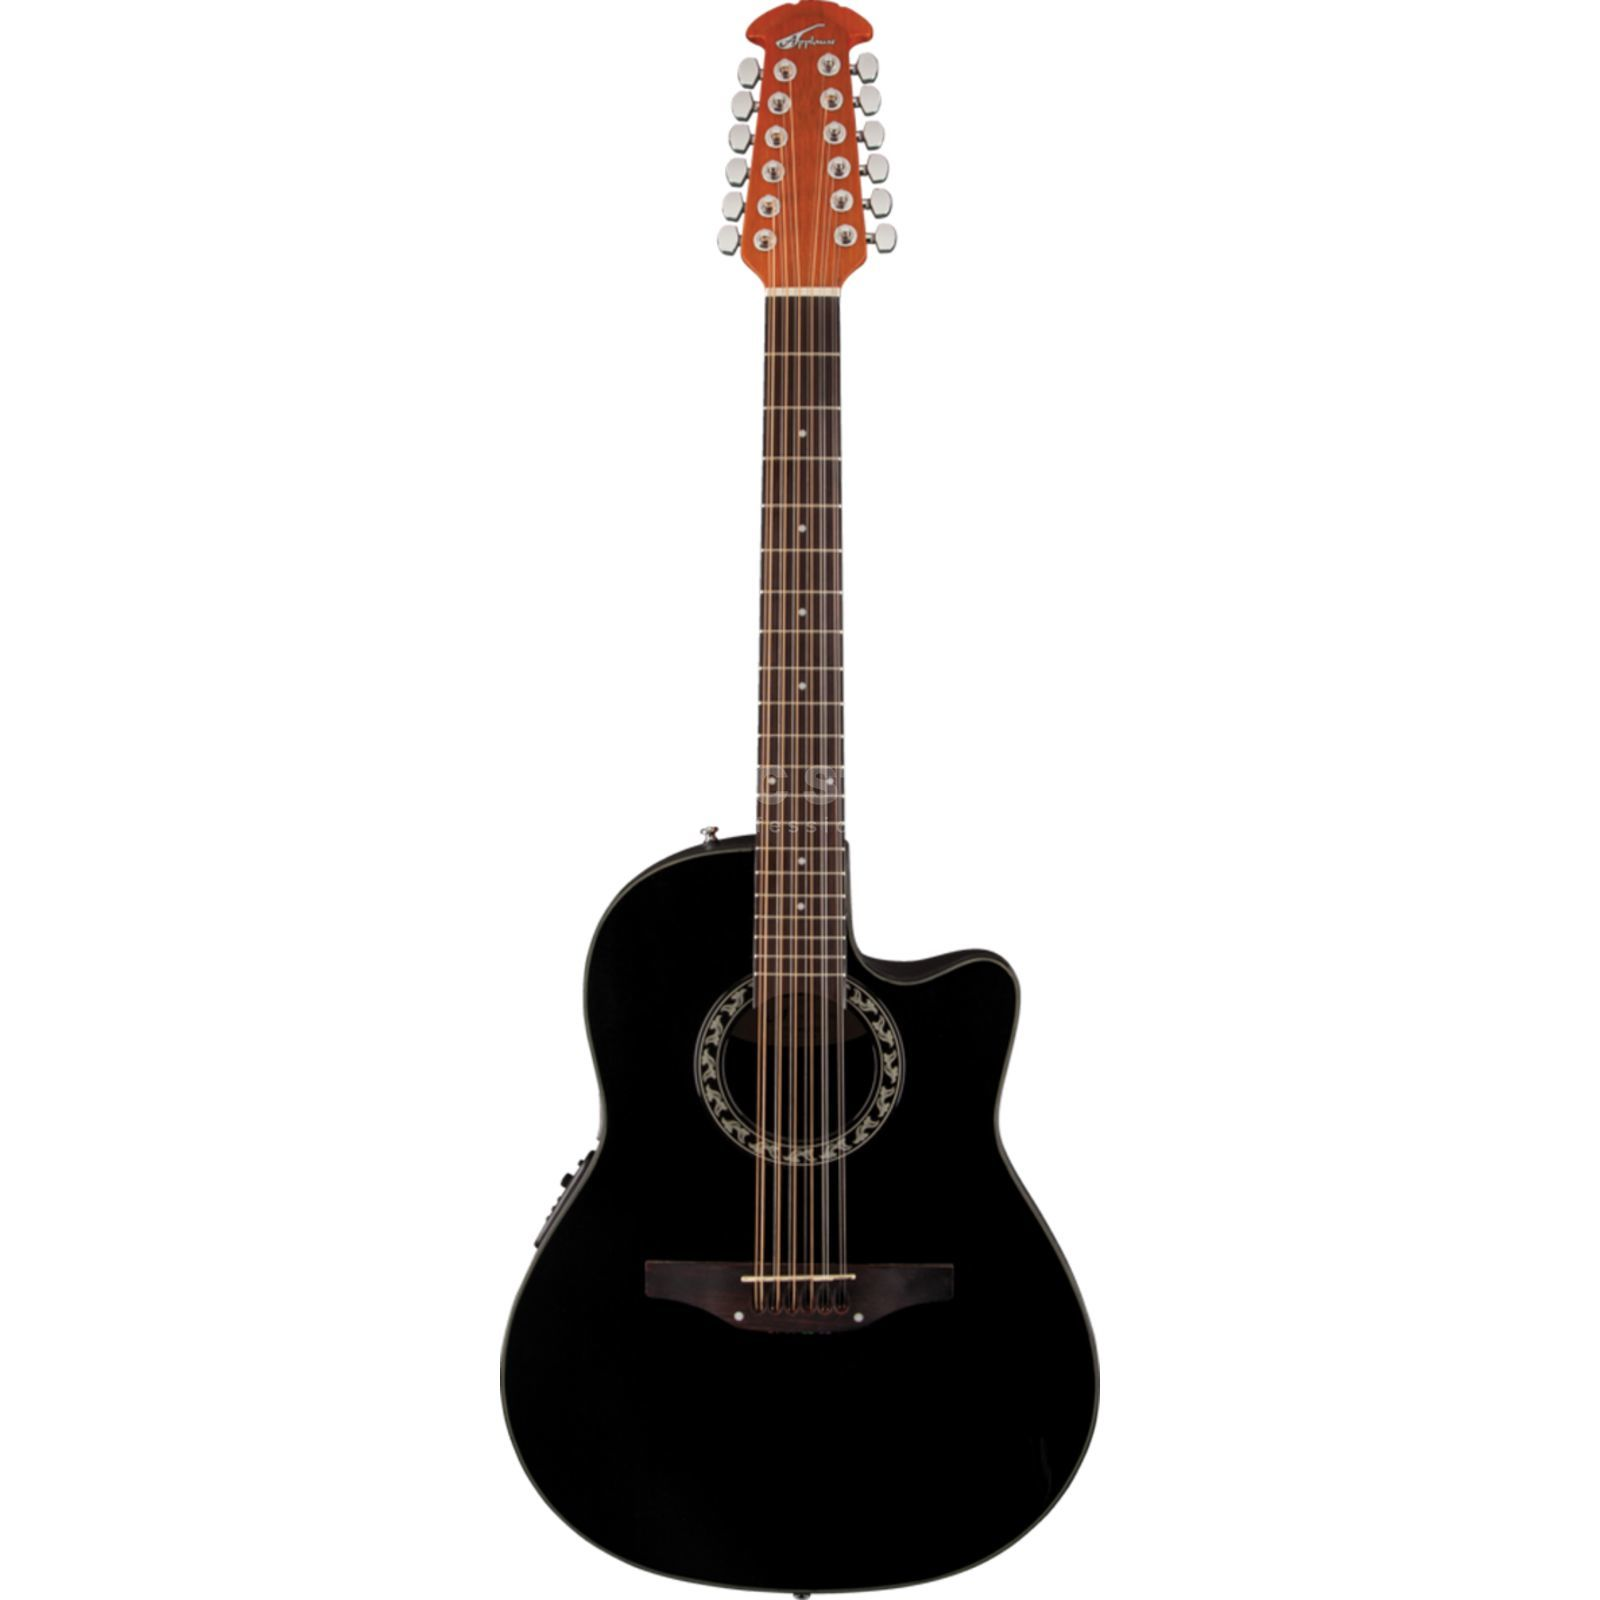 Ovation AB2412-5 Applause Balladeer BK 12 String, Black Produktbild